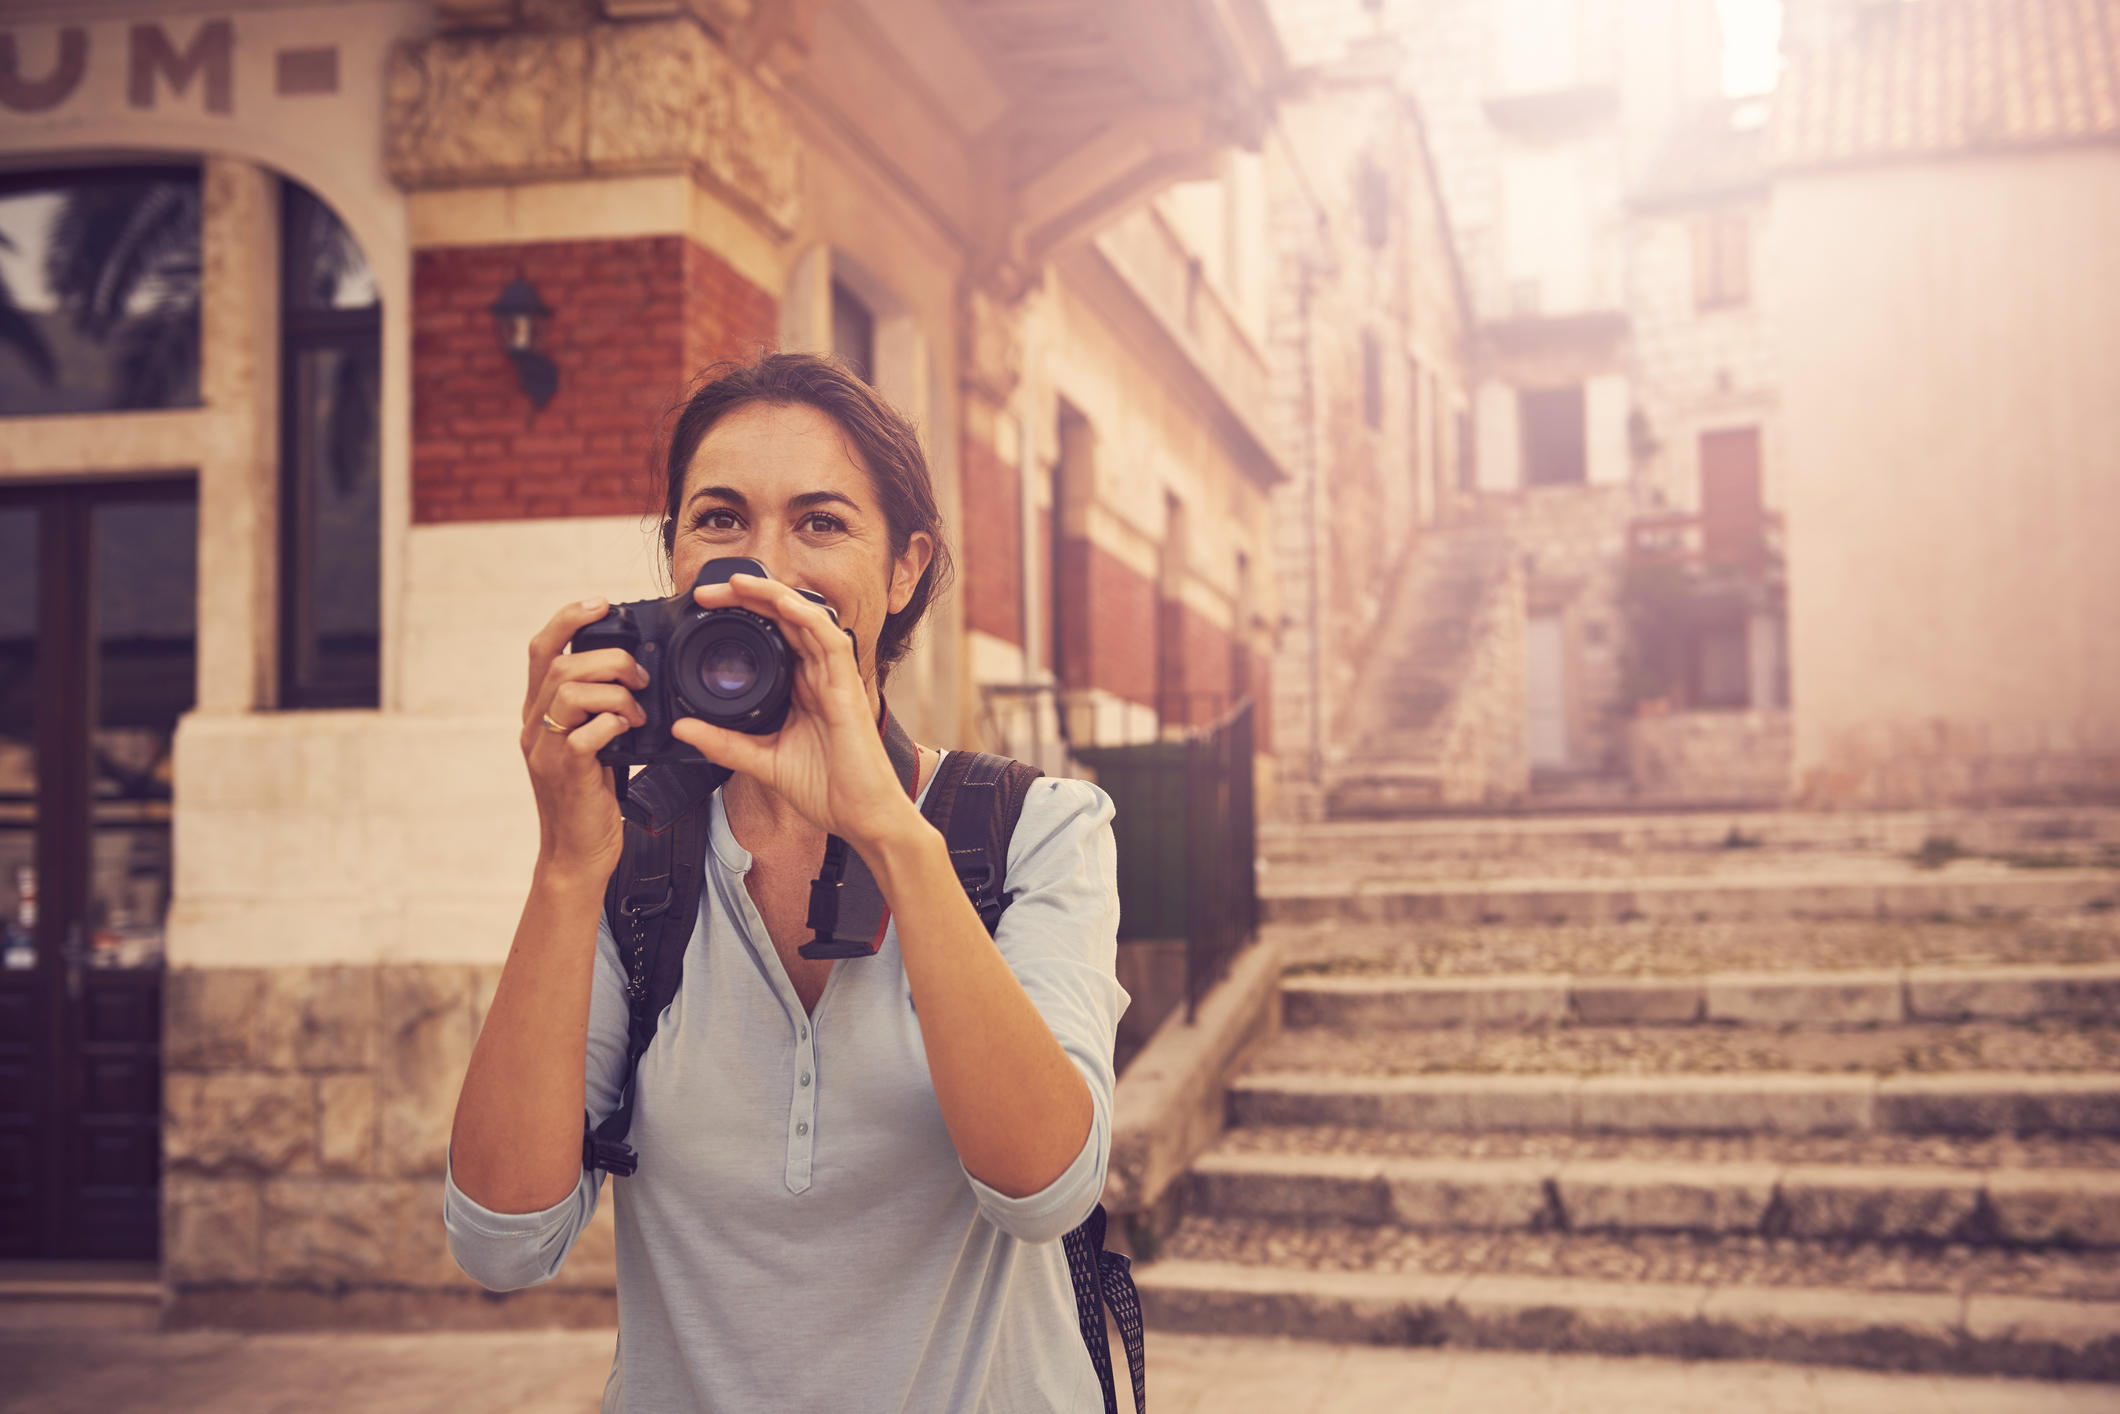 Shot of a woman taking photos while exploring a foreign city